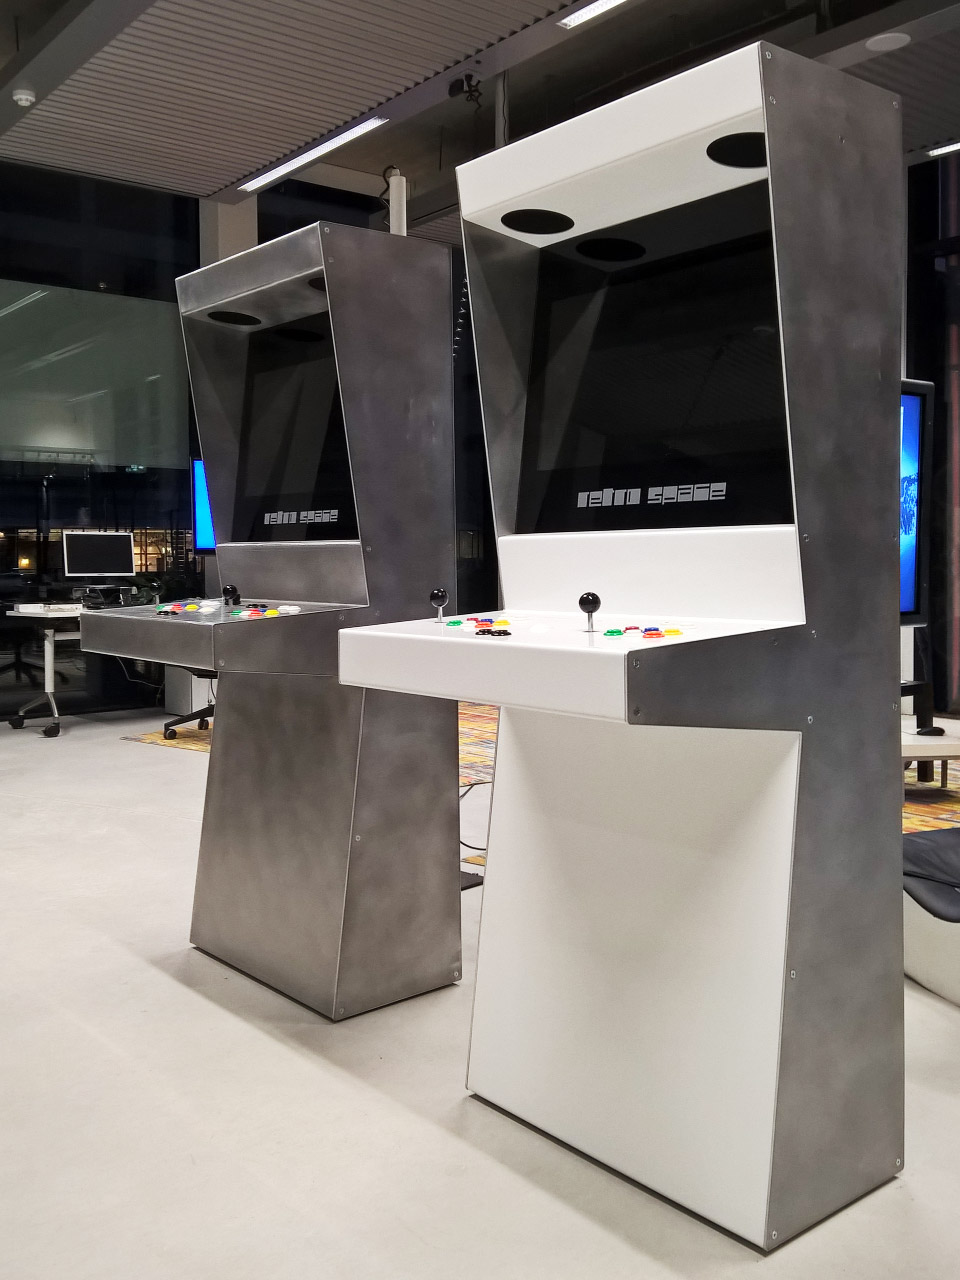 Retro Space Modern Arcade Cabinets From The Netherlands